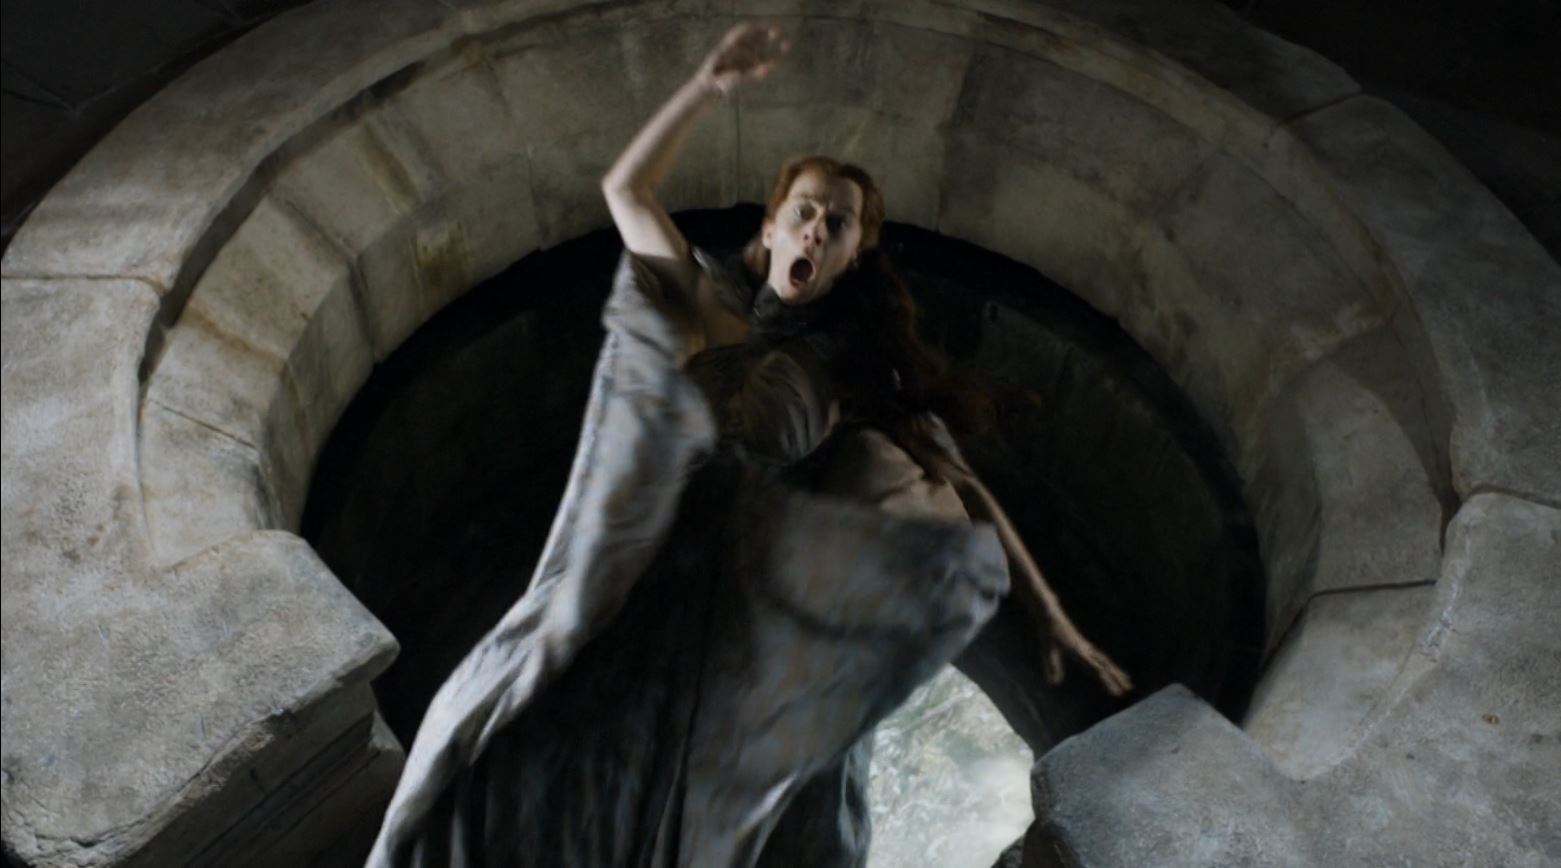 The End of the Twins Cycle - Page 28 Game-Of-Thrones-S4Ep7-Mockingbird-Review-Kate-Dickie-as-Lysa-Arryn-thrown-out-of-the-moon-door